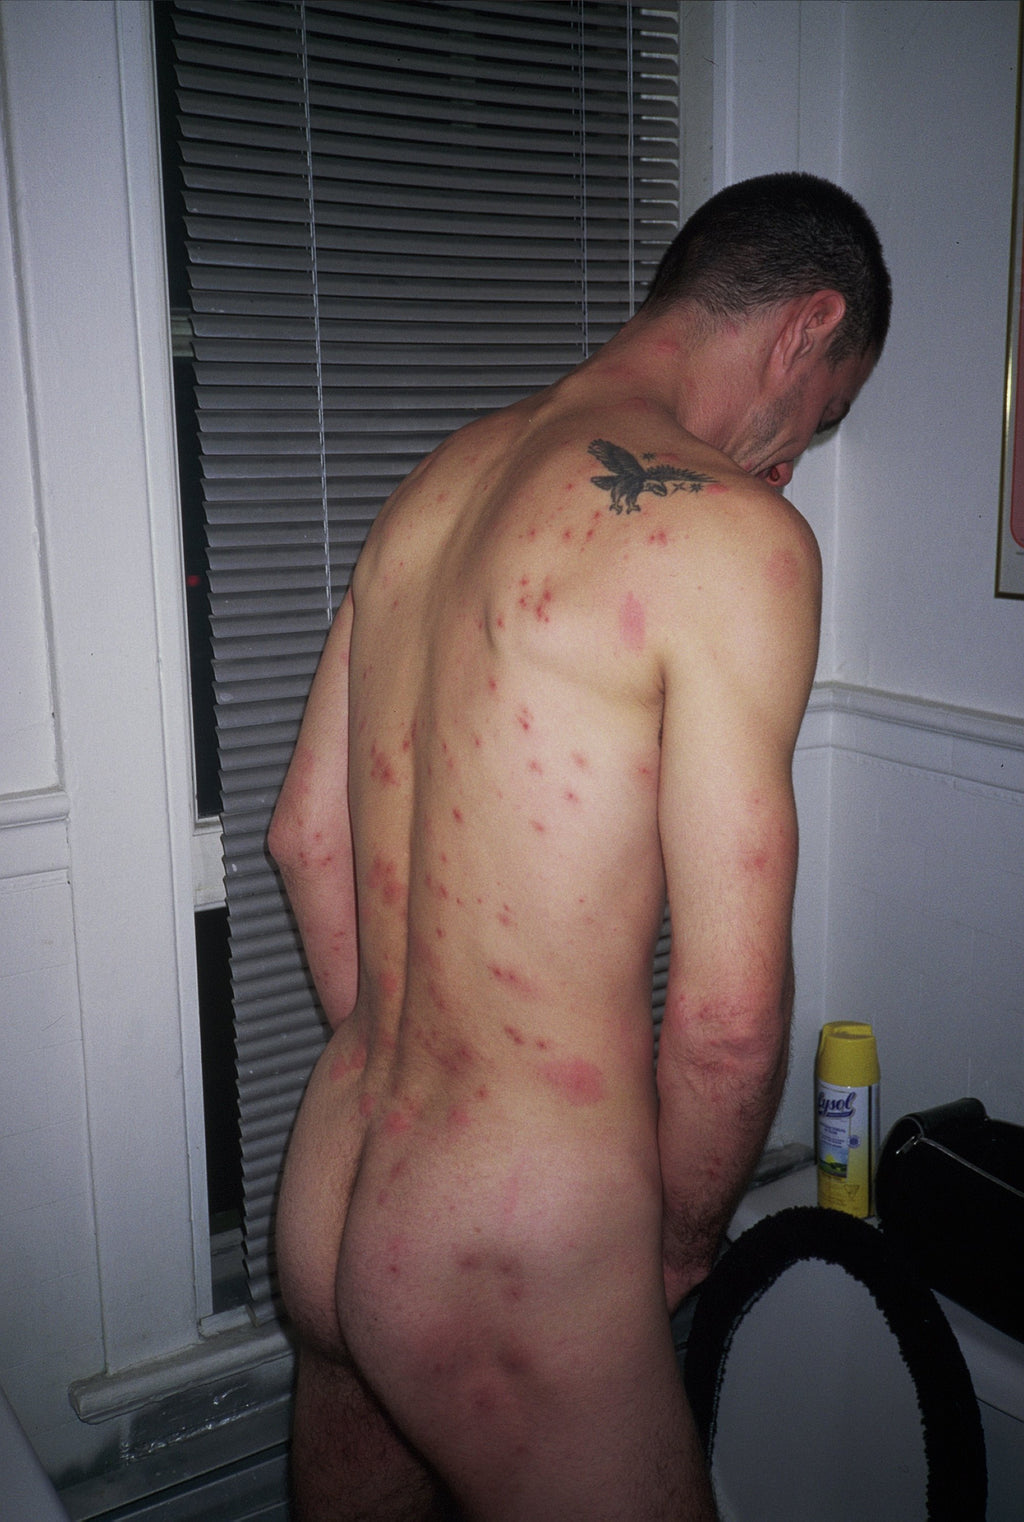 BRUCE LABRUCE, Bad Rash, 2003